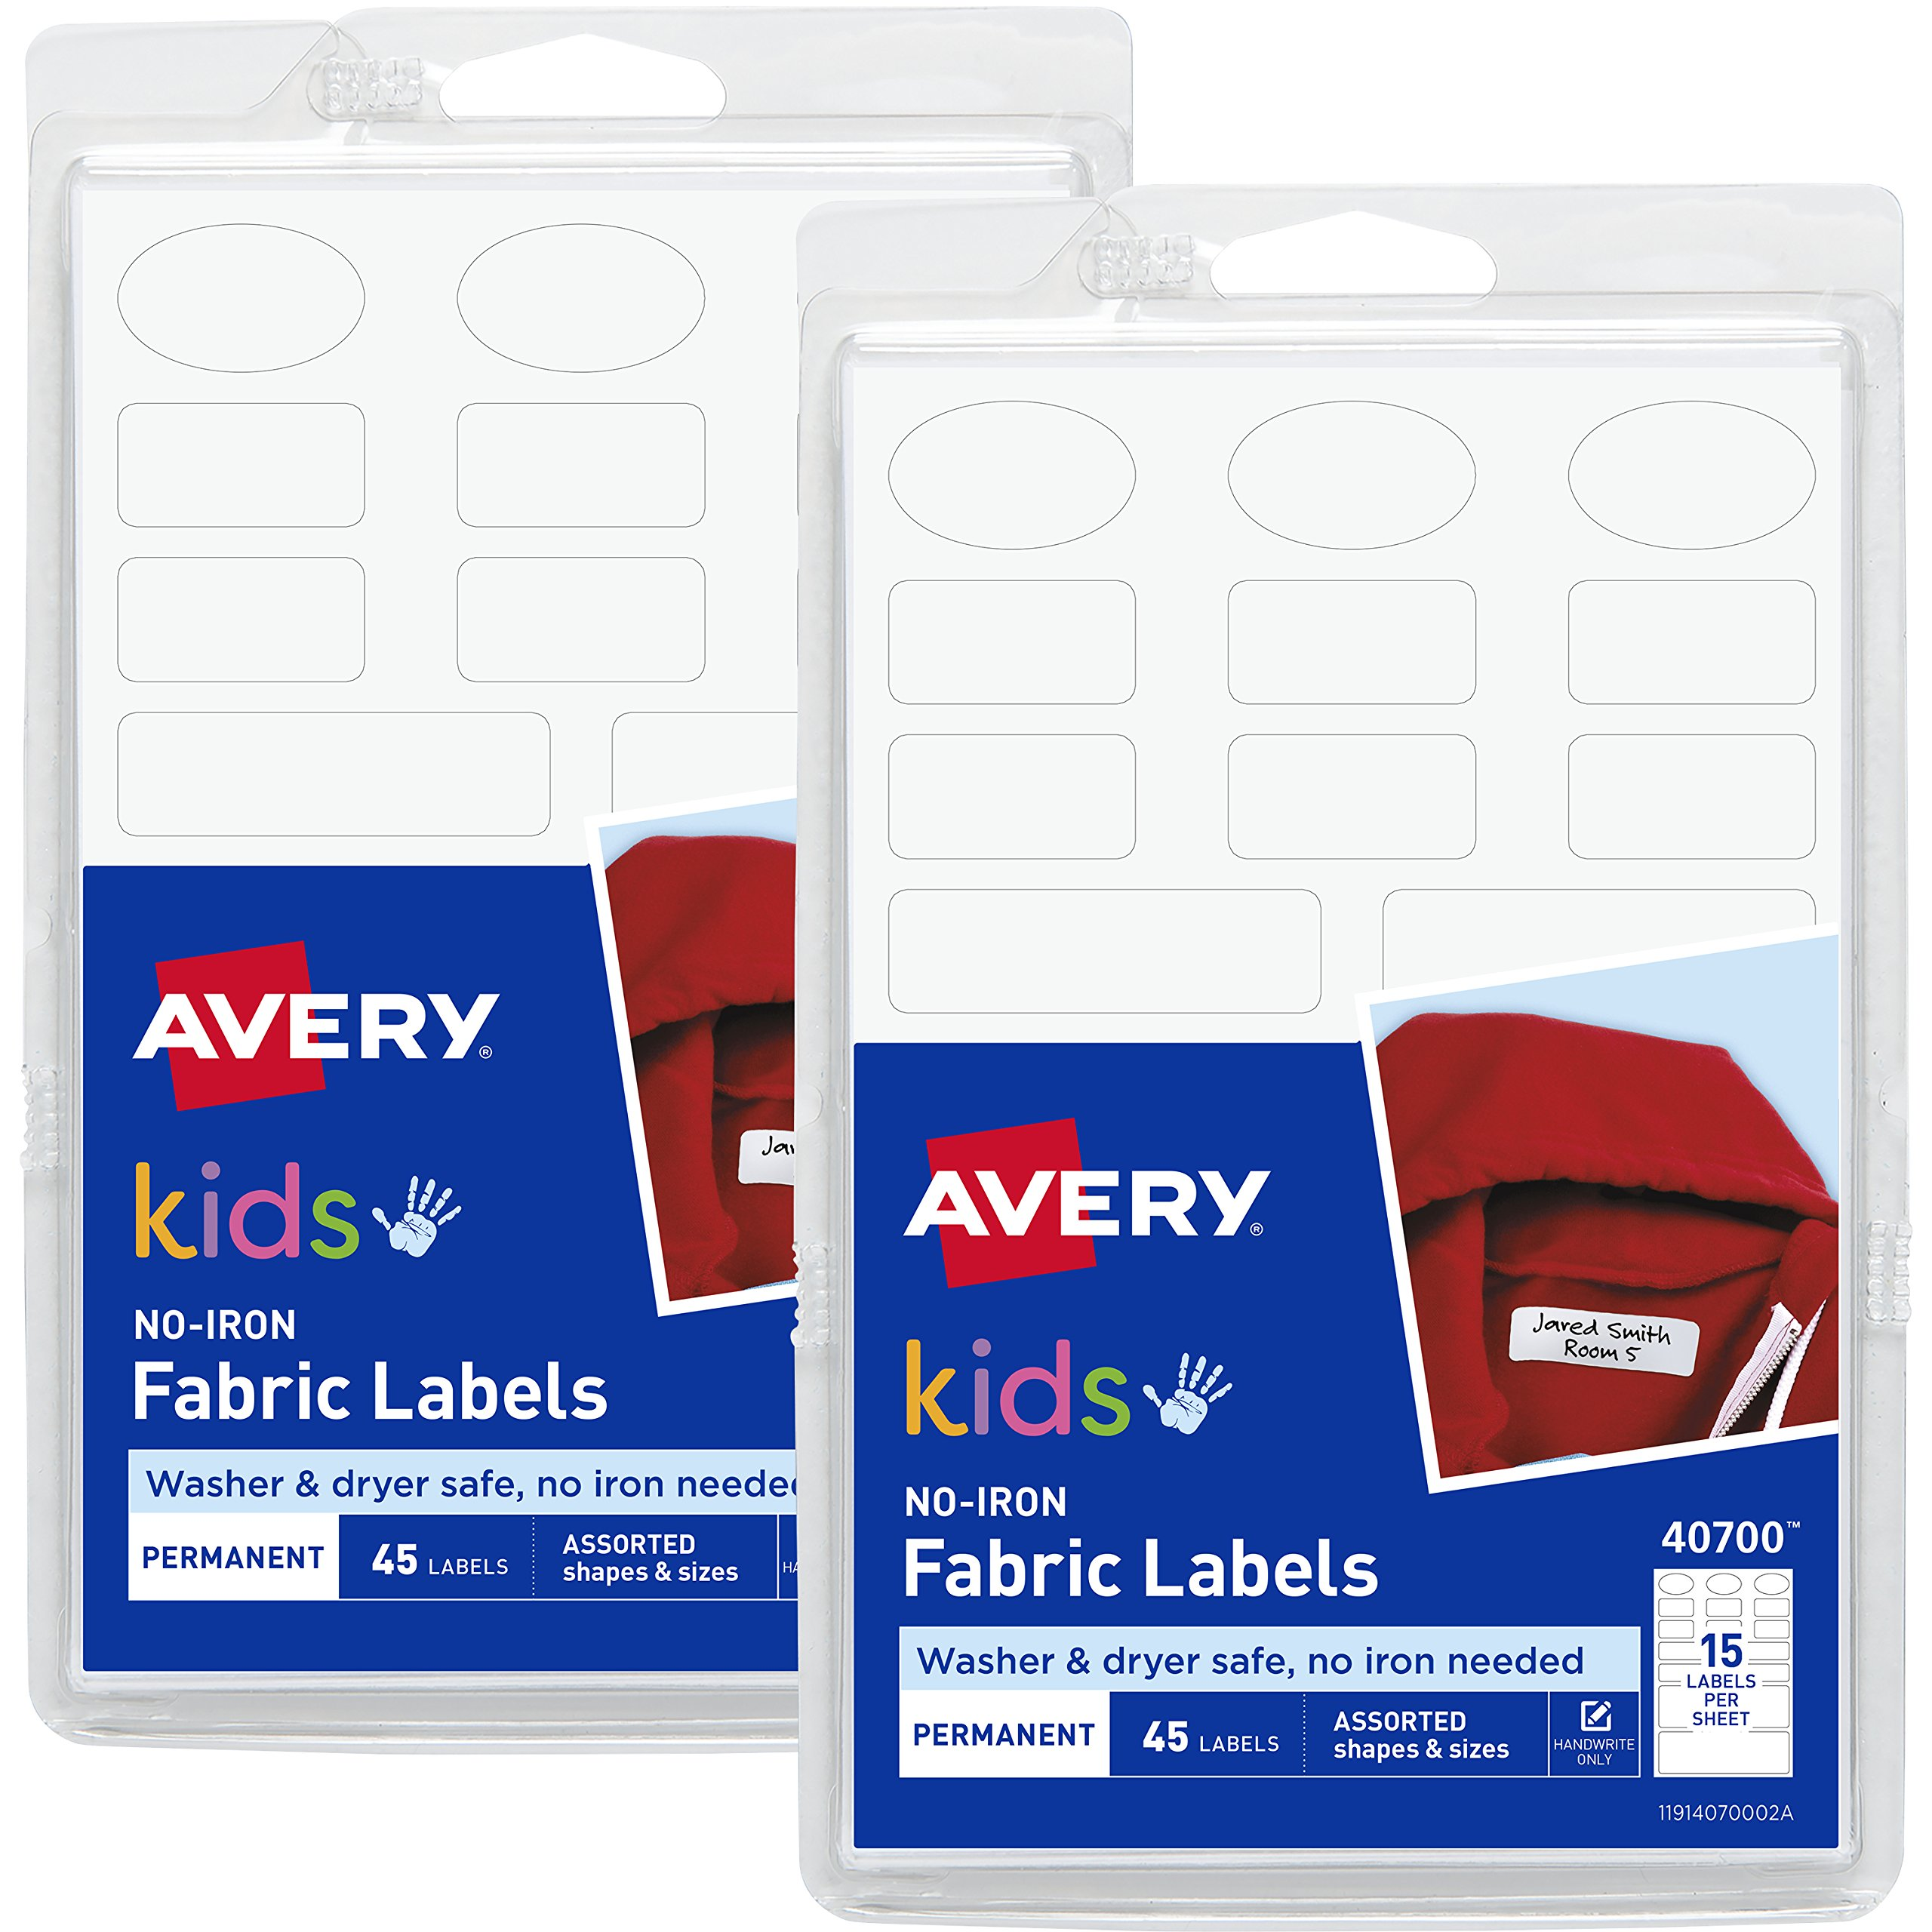 Avery No-Iron Kids Clothing Labels, Washer & Dryer Safe, Assorted Shapes & Sizes, (2-Pack) 90 Labels (40700)